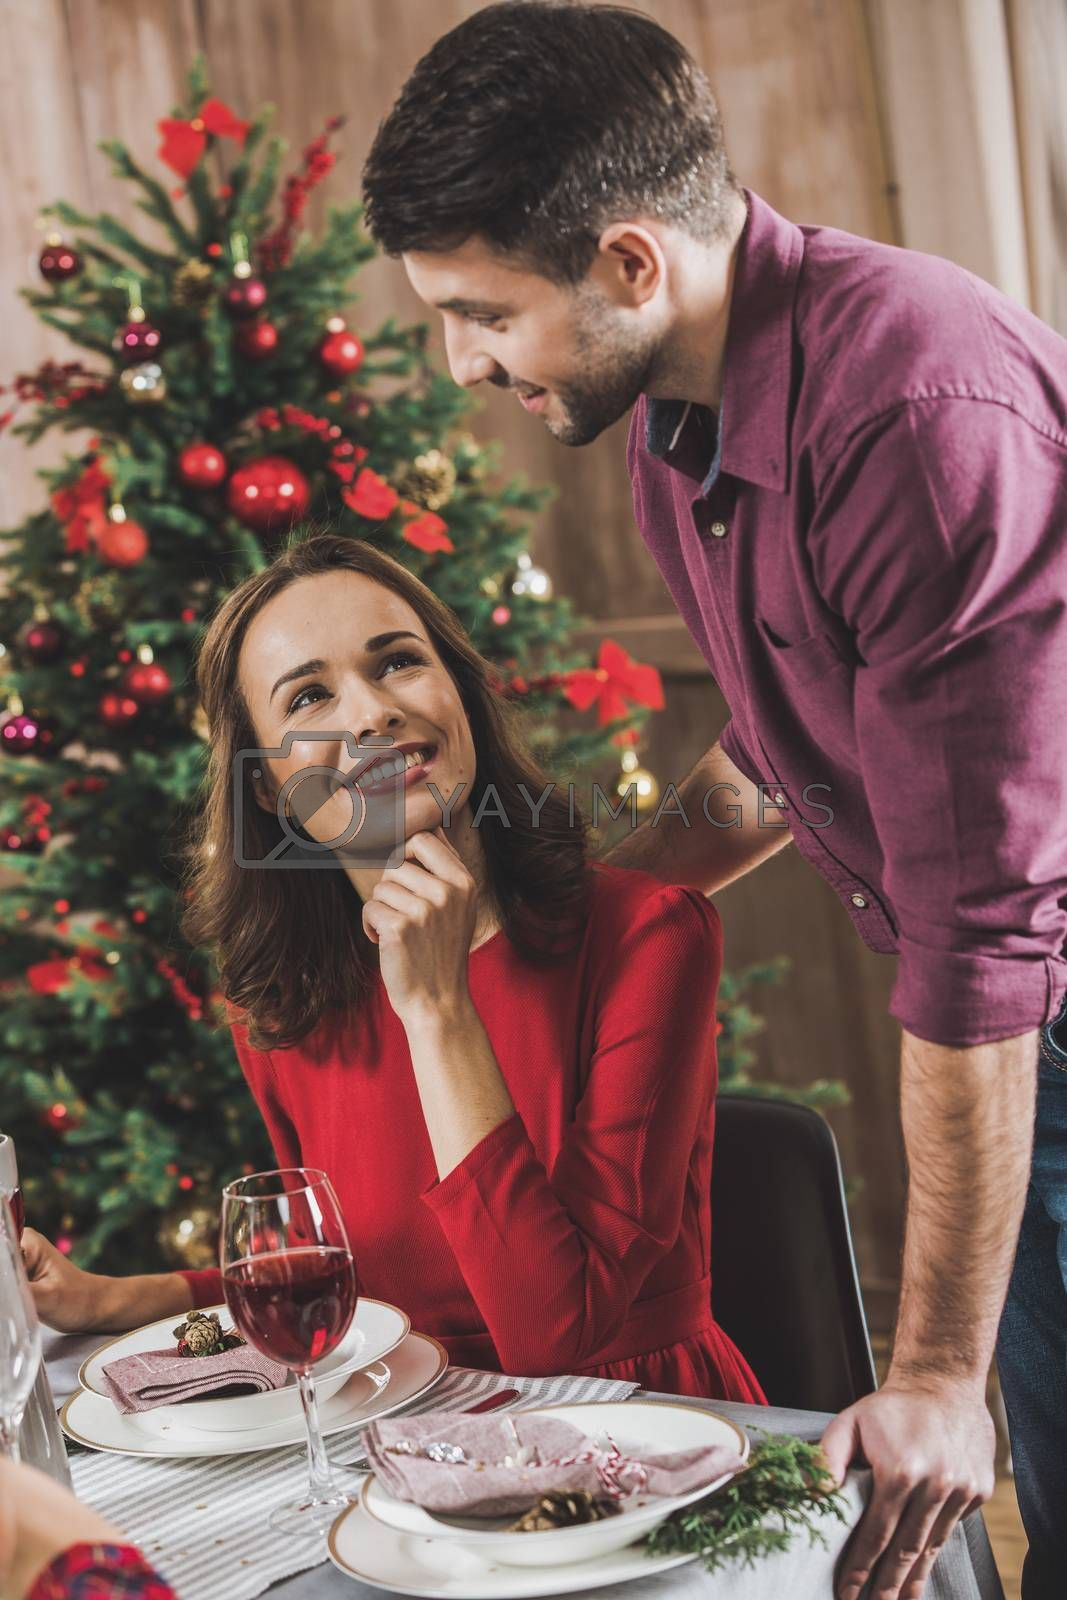 Smiling young couple at holiday table at Christmas eve